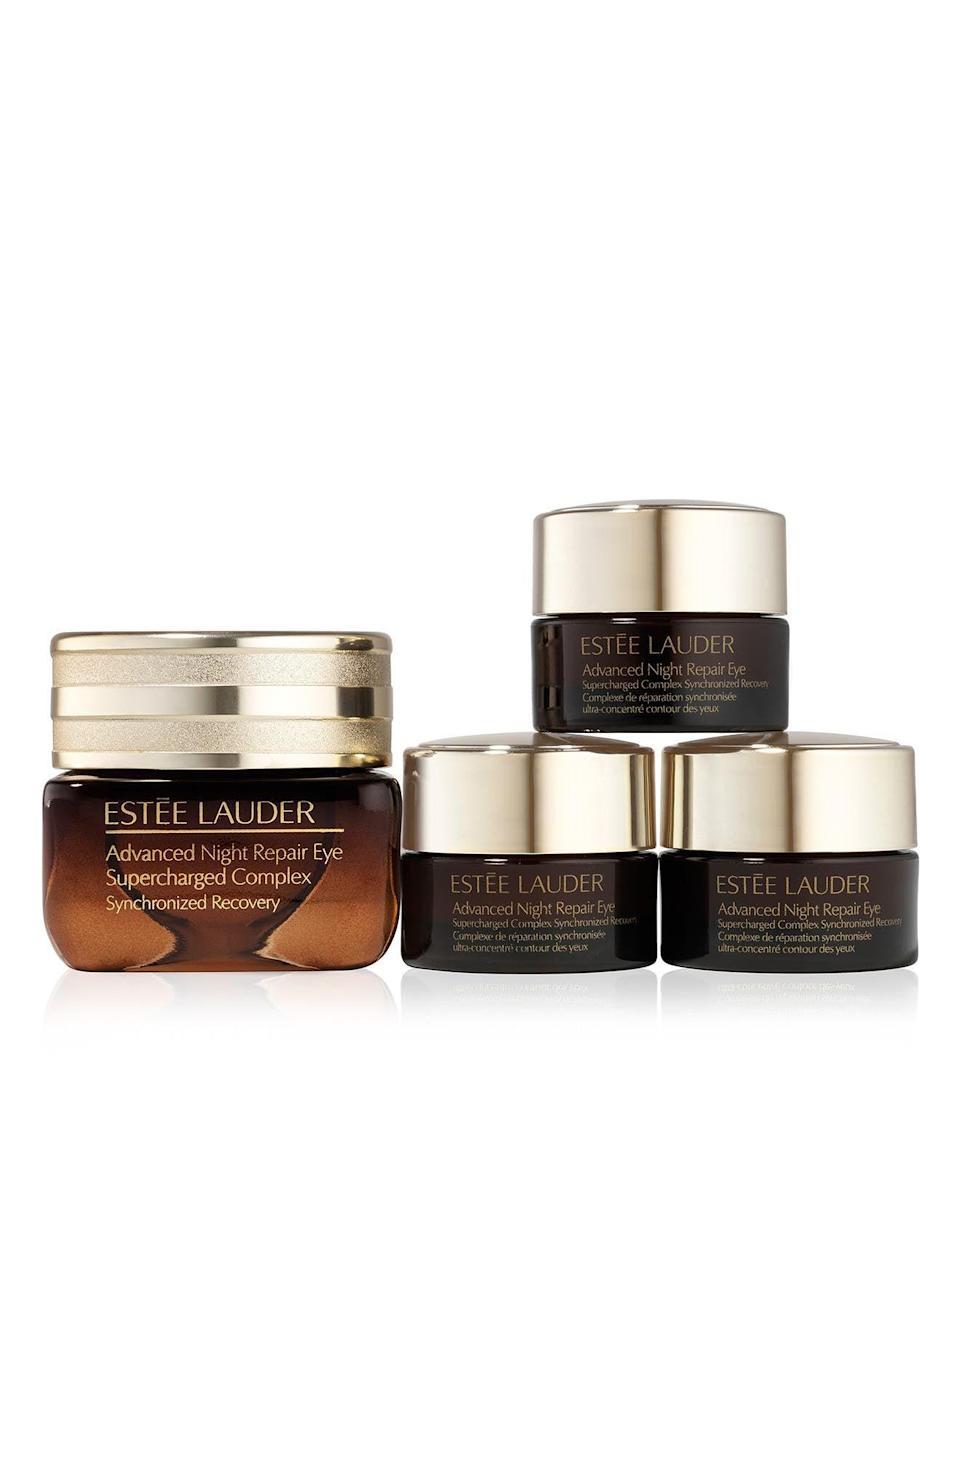 """<p><strong>Estée Lauder</strong></p><p>nordstrom.com</p><p><strong>$66.00</strong></p><p><a href=""""https://go.redirectingat.com?id=74968X1596630&url=https%3A%2F%2Fwww.nordstrom.com%2Fs%2Festee-lauder-advanced-night-repair-eye-cream-set-132-value%2F5914783&sref=https%3A%2F%2Fwww.elle.com%2Fbeauty%2Fg36944650%2Fnorstrom-anniversary-beauty-sale-2021%2F"""" rel=""""nofollow noopener"""" target=""""_blank"""" data-ylk=""""slk:Shop Now"""" class=""""link rapid-noclick-resp"""">Shop Now</a></p><p>Here's a scam I'm mad about: Why are eye creams packaged in such tiny bottles? Here's a solution I'm not mad at: Getting <em>three</em> eye creams for the same price that will last you three times as long.</p>"""